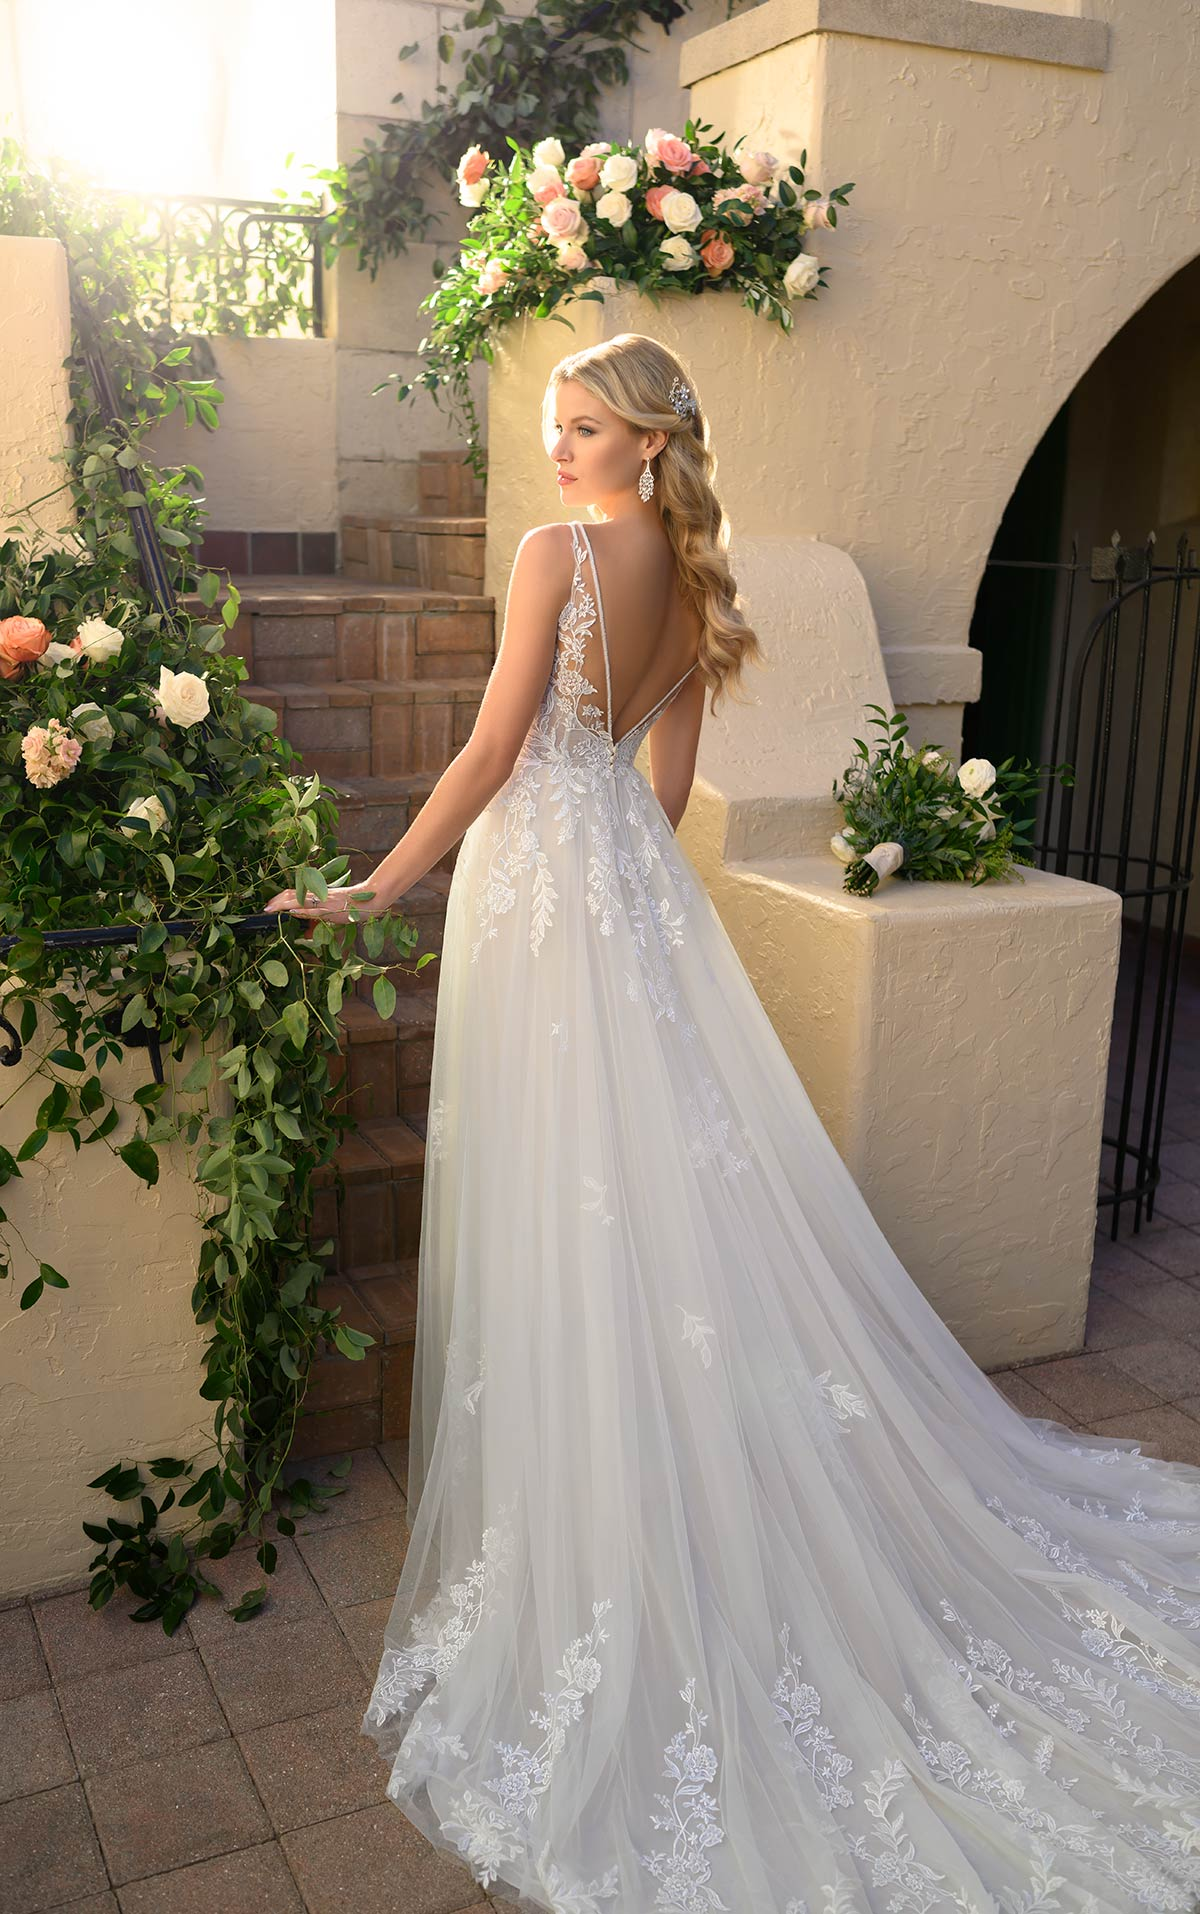 Jocelyn-7083-Stella-York-feminine-lace-aline-wedding-dress-tulle-skirt